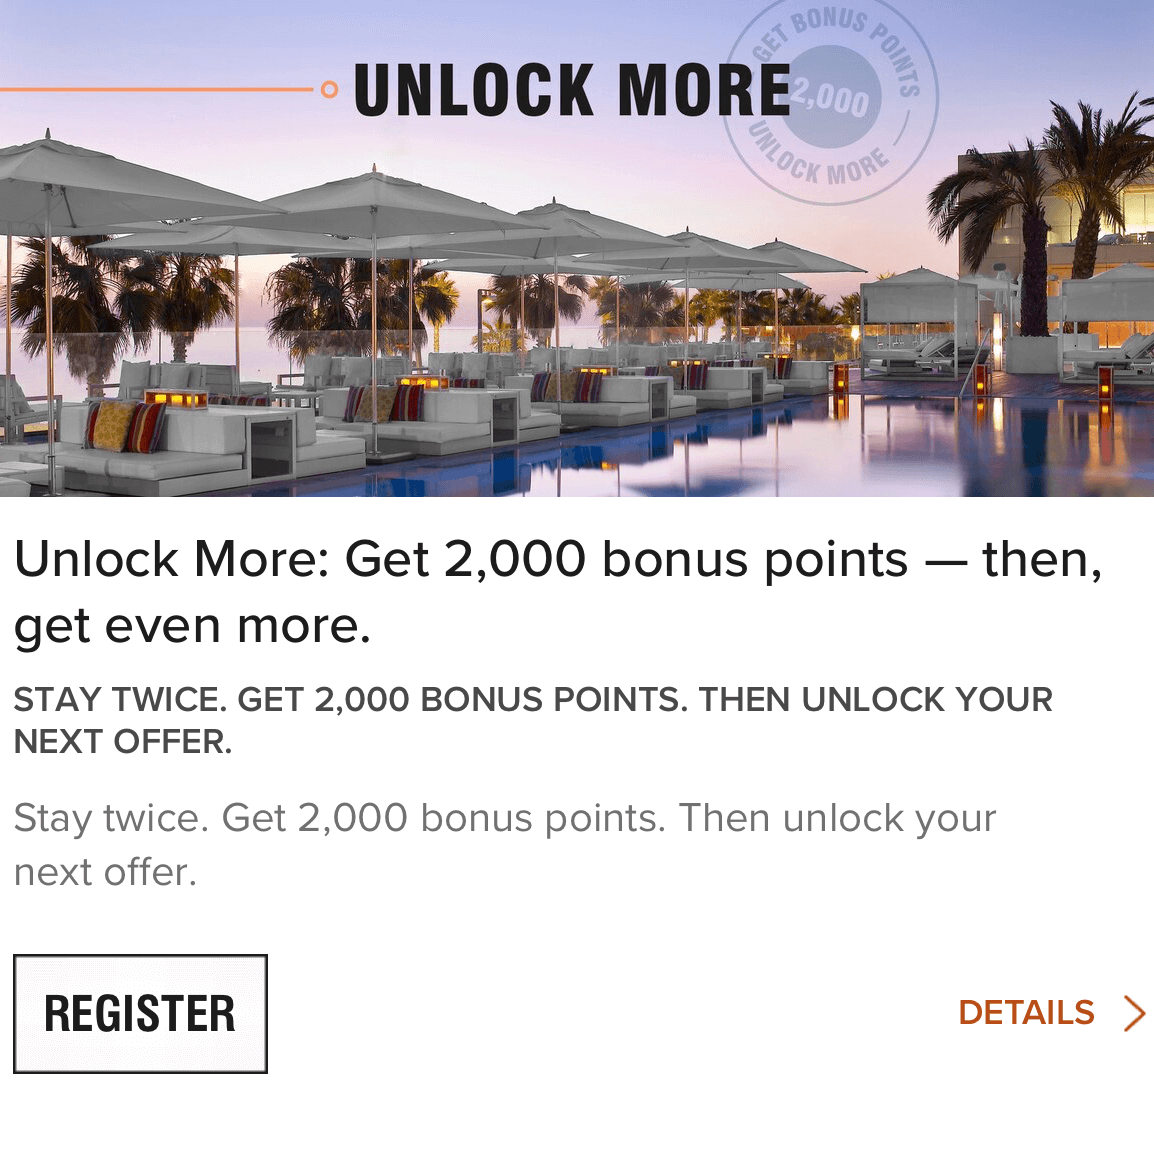 Marriott Bonvoy - 2019年Q4 Unlock more積分活動,入住兩次可獲2,000分之後可以解鎖下一個活動!